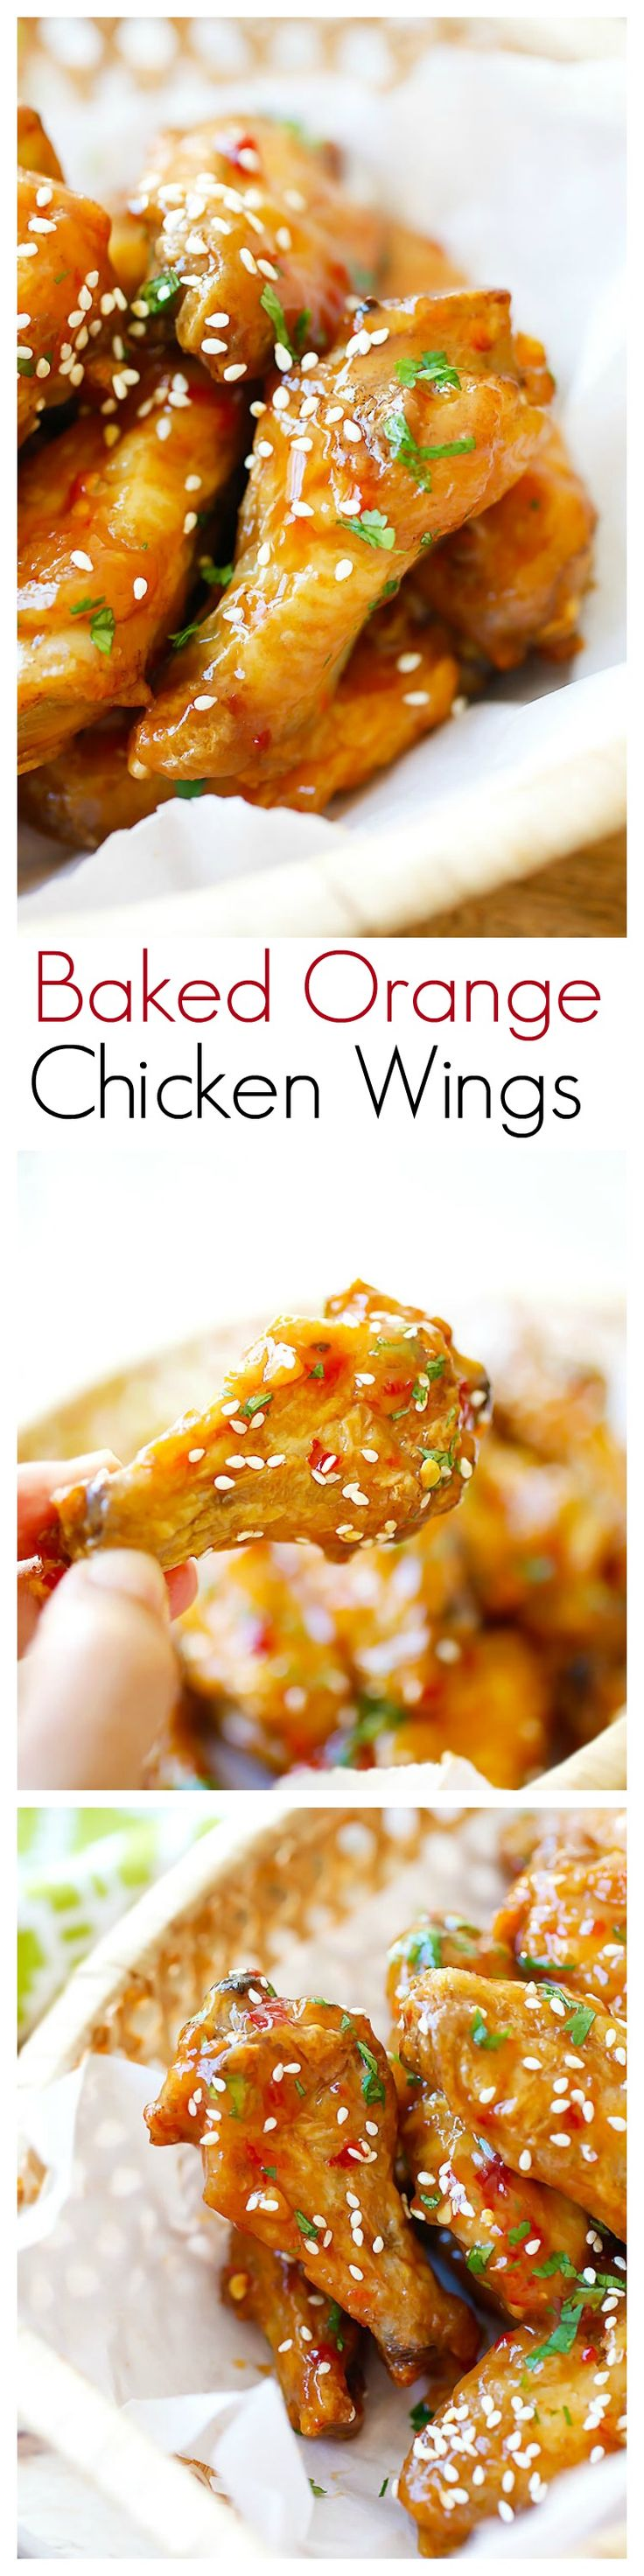 Baked Orange Chicken Wings - crispy, sticky baked wings (no frying) in an amazeballs orange sauce, so yummy | rasamalaysia.com | @justataste